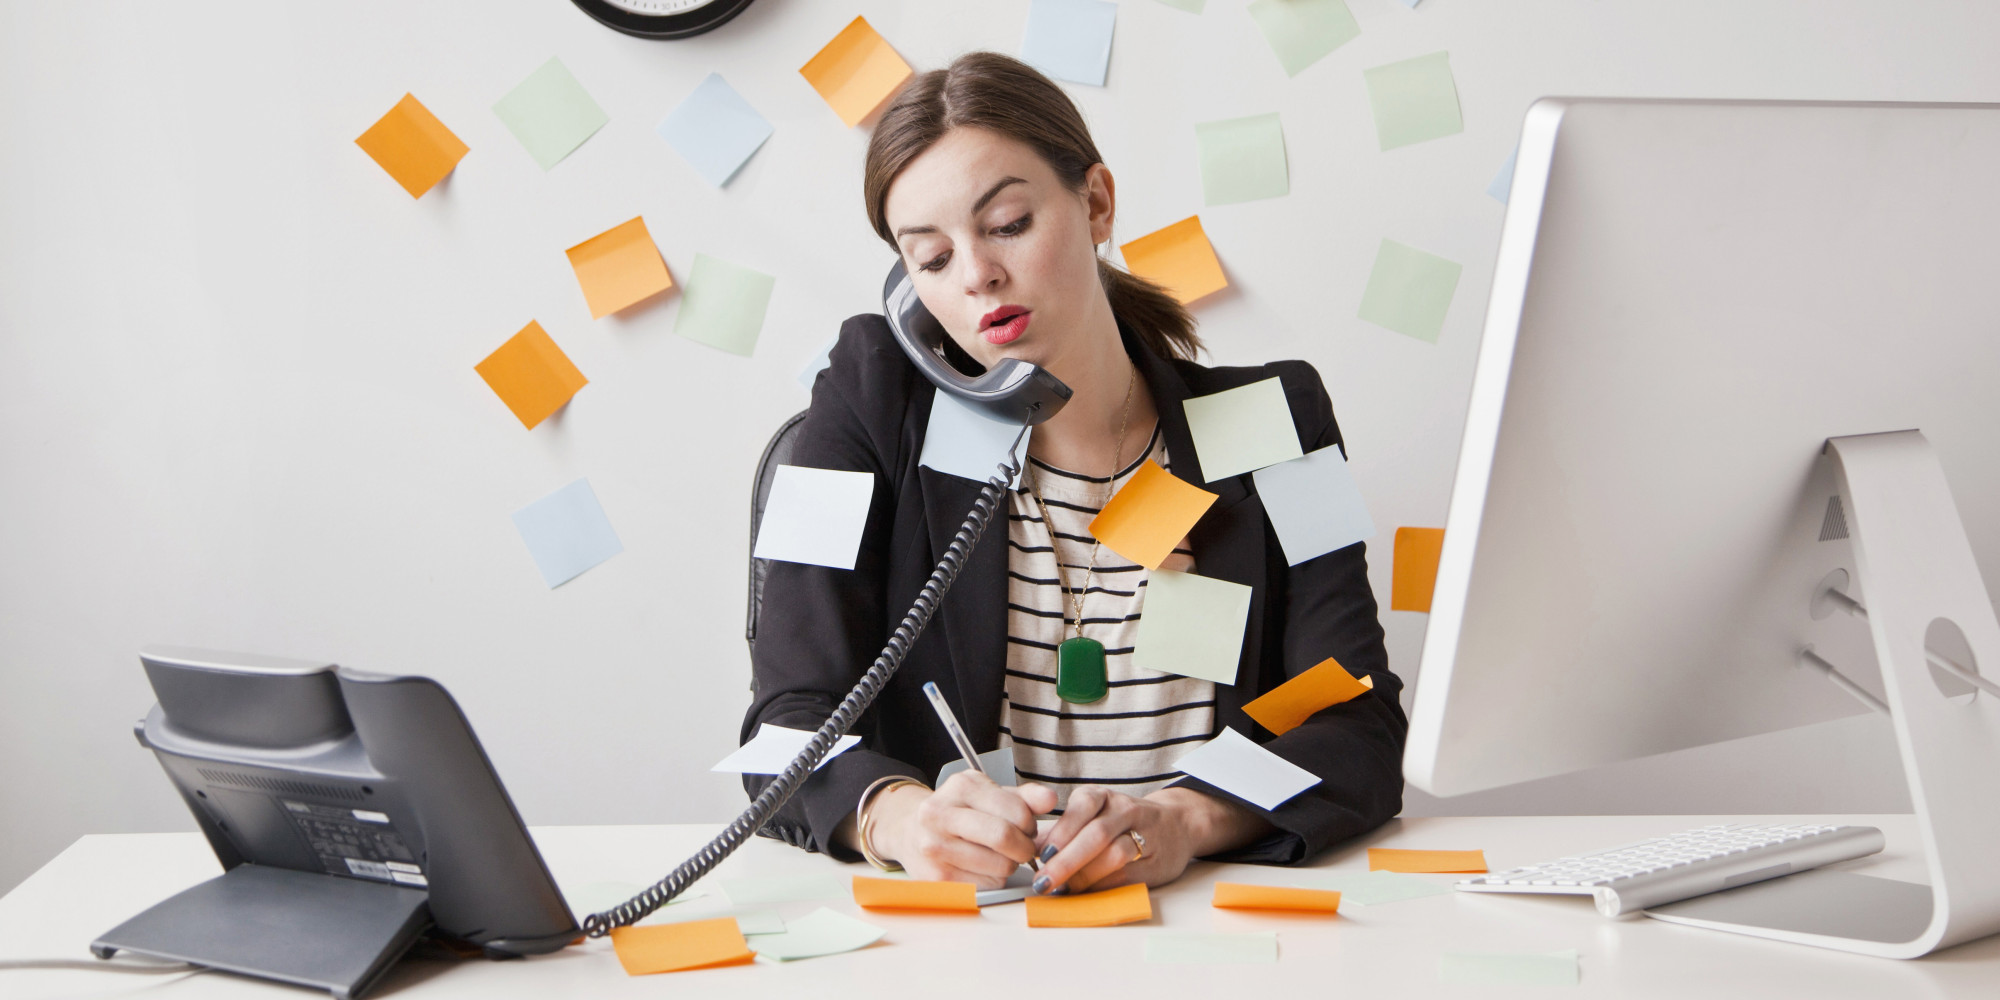 Want To Be More Efficient? Stop Multi-Tasking - Key Person ...